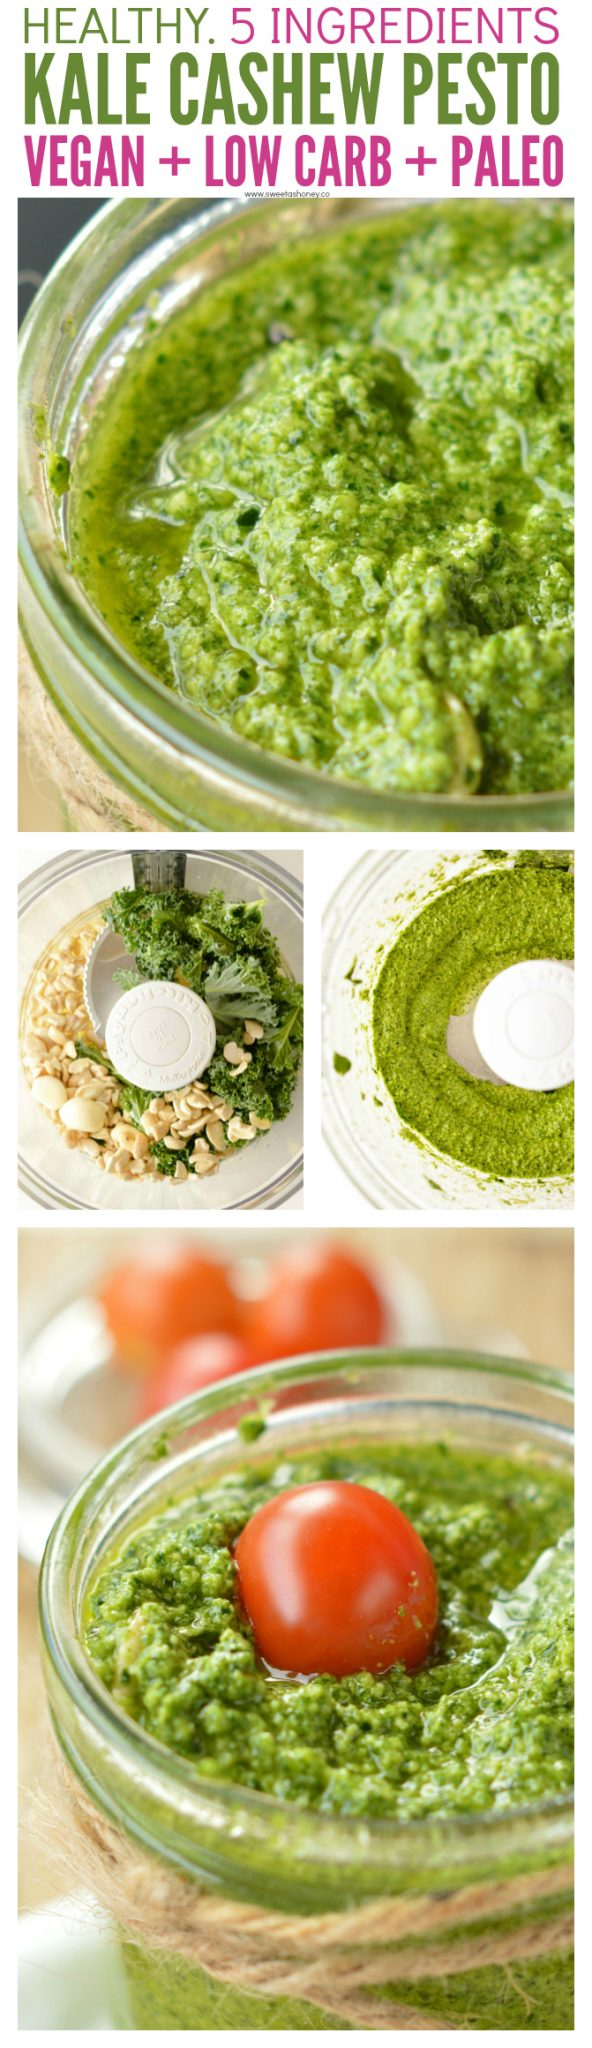 Cashew Pesto Vegan recipe with basil, kale or spinach, olive oil and garlic. A delicious dairy free pesto recipe easy to make. Paleo, gluten free.